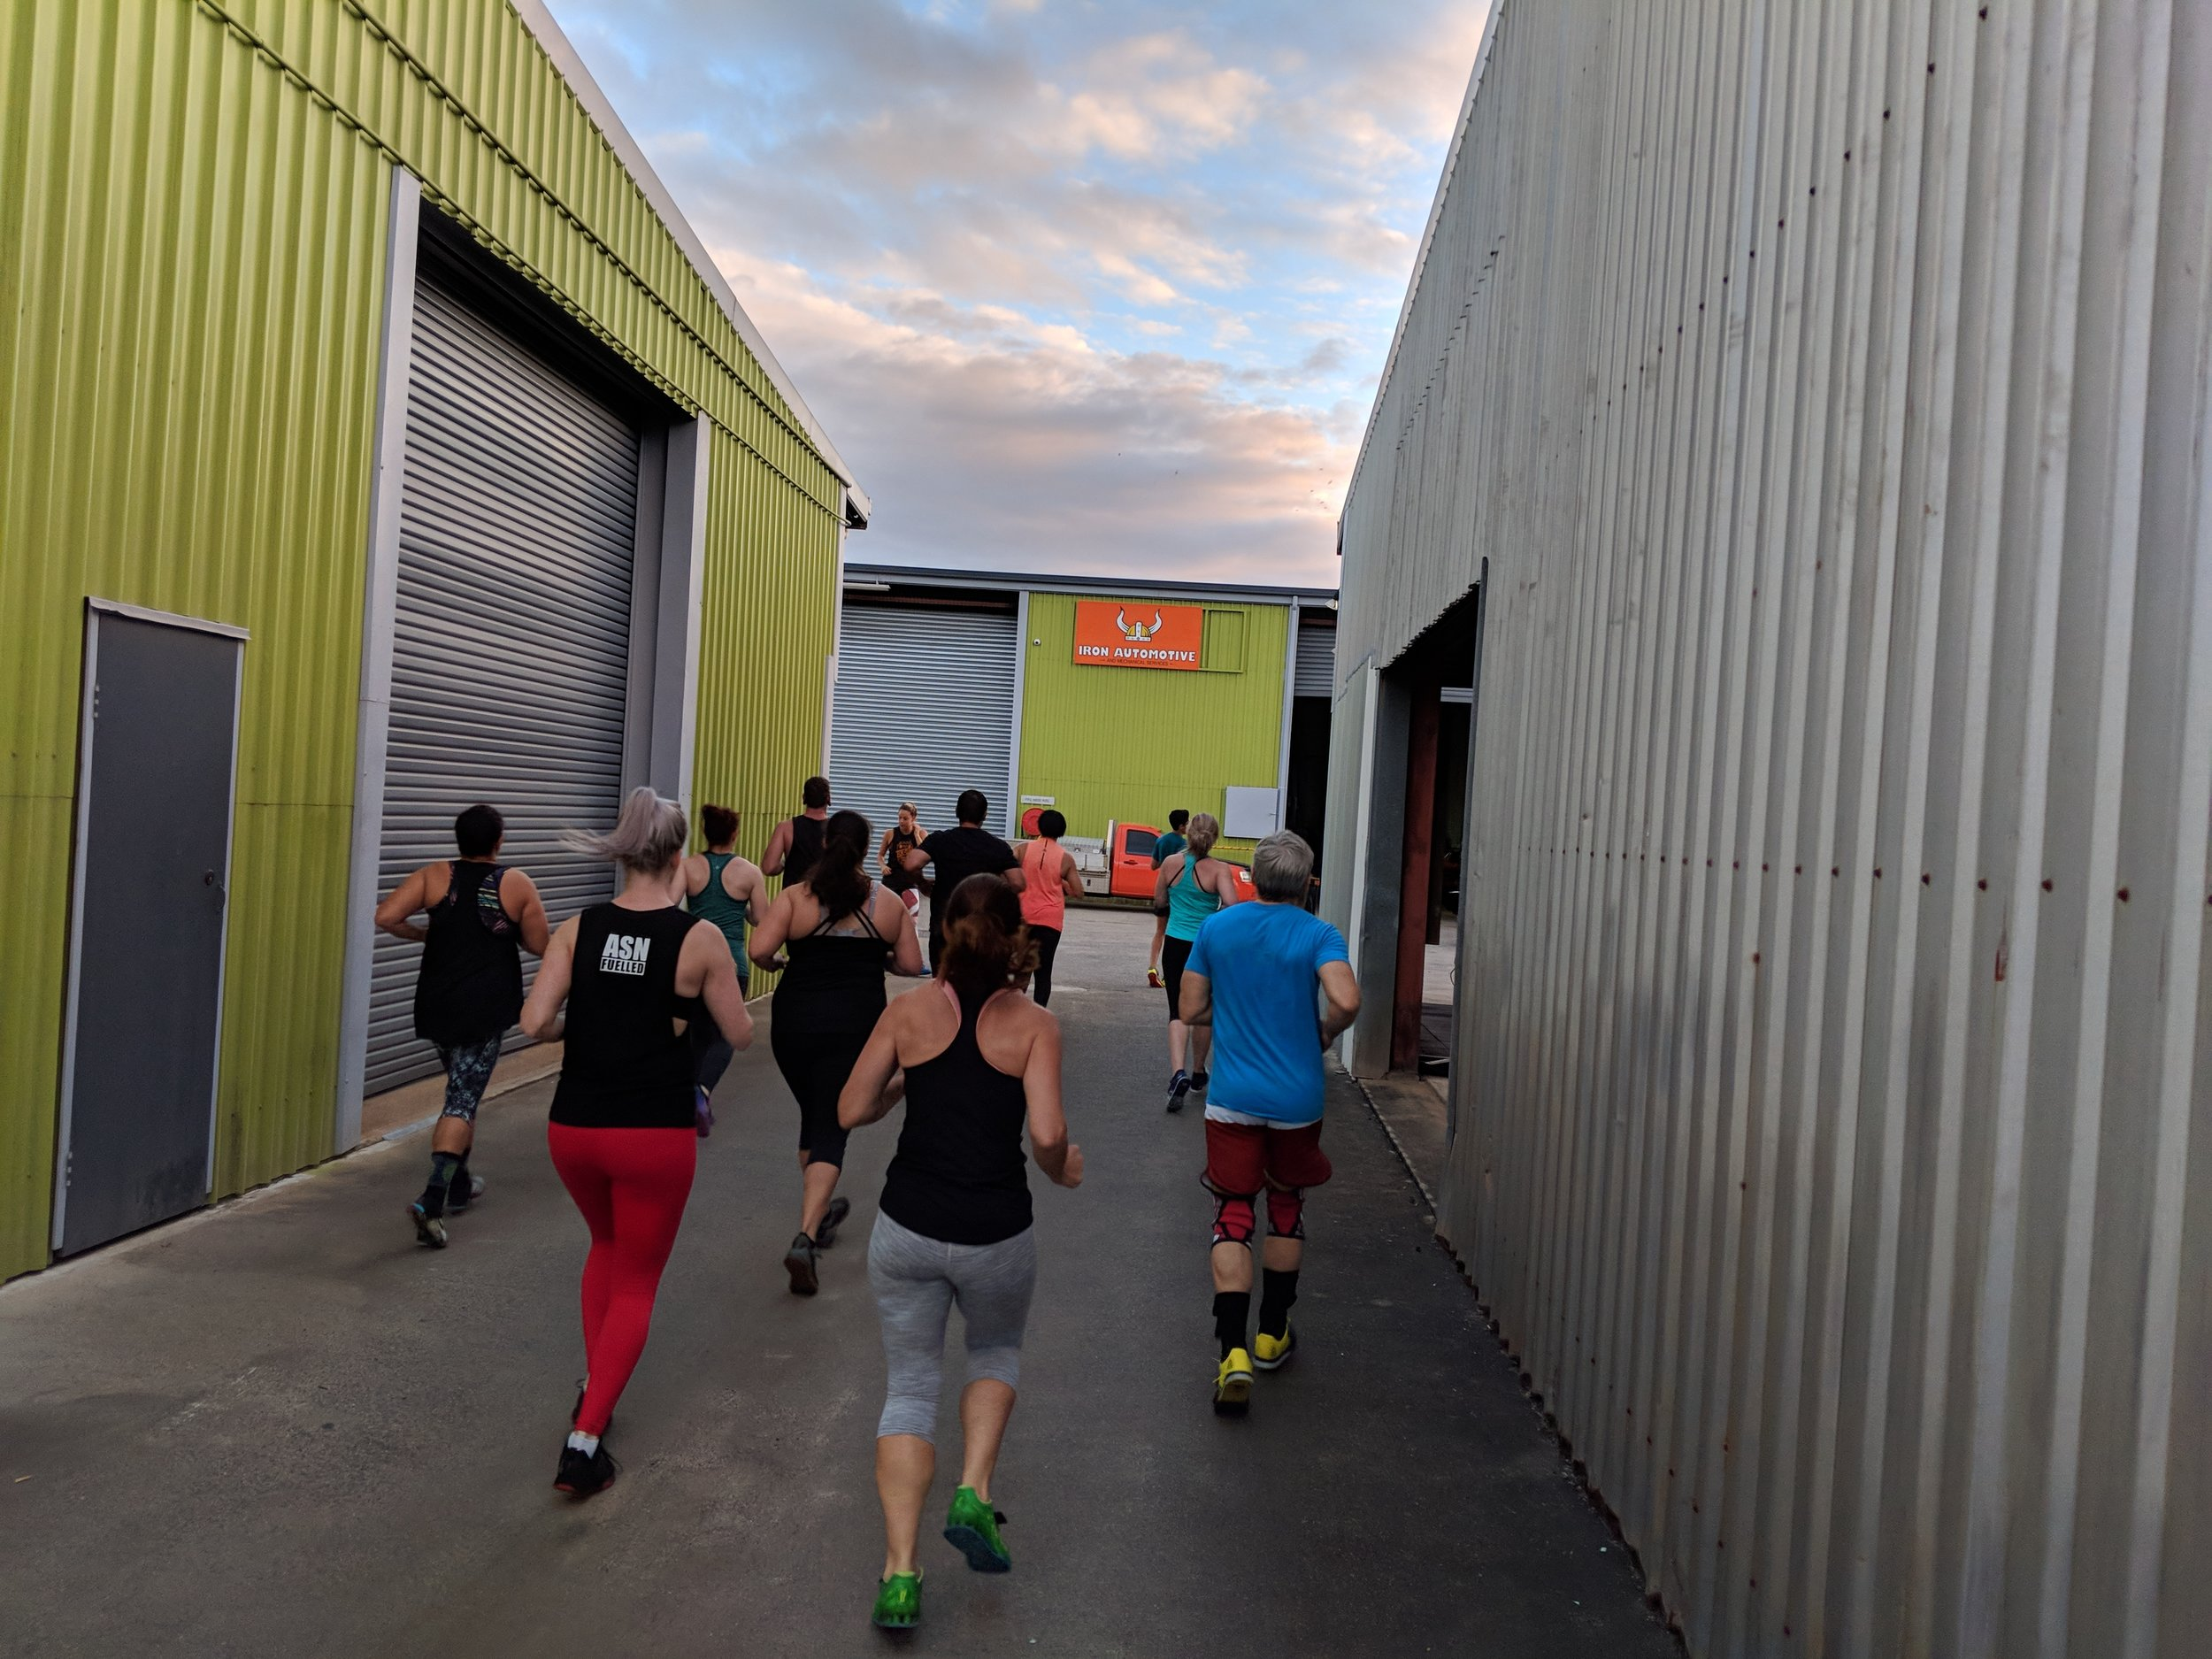 Drop In - We love visitors to the box! Once purchased you have 1 week to use your drop in pass. CrossFit experience is essential though folks! If you're new to CrossFit then go ahead and contact us … we'd be happy to help you get started.